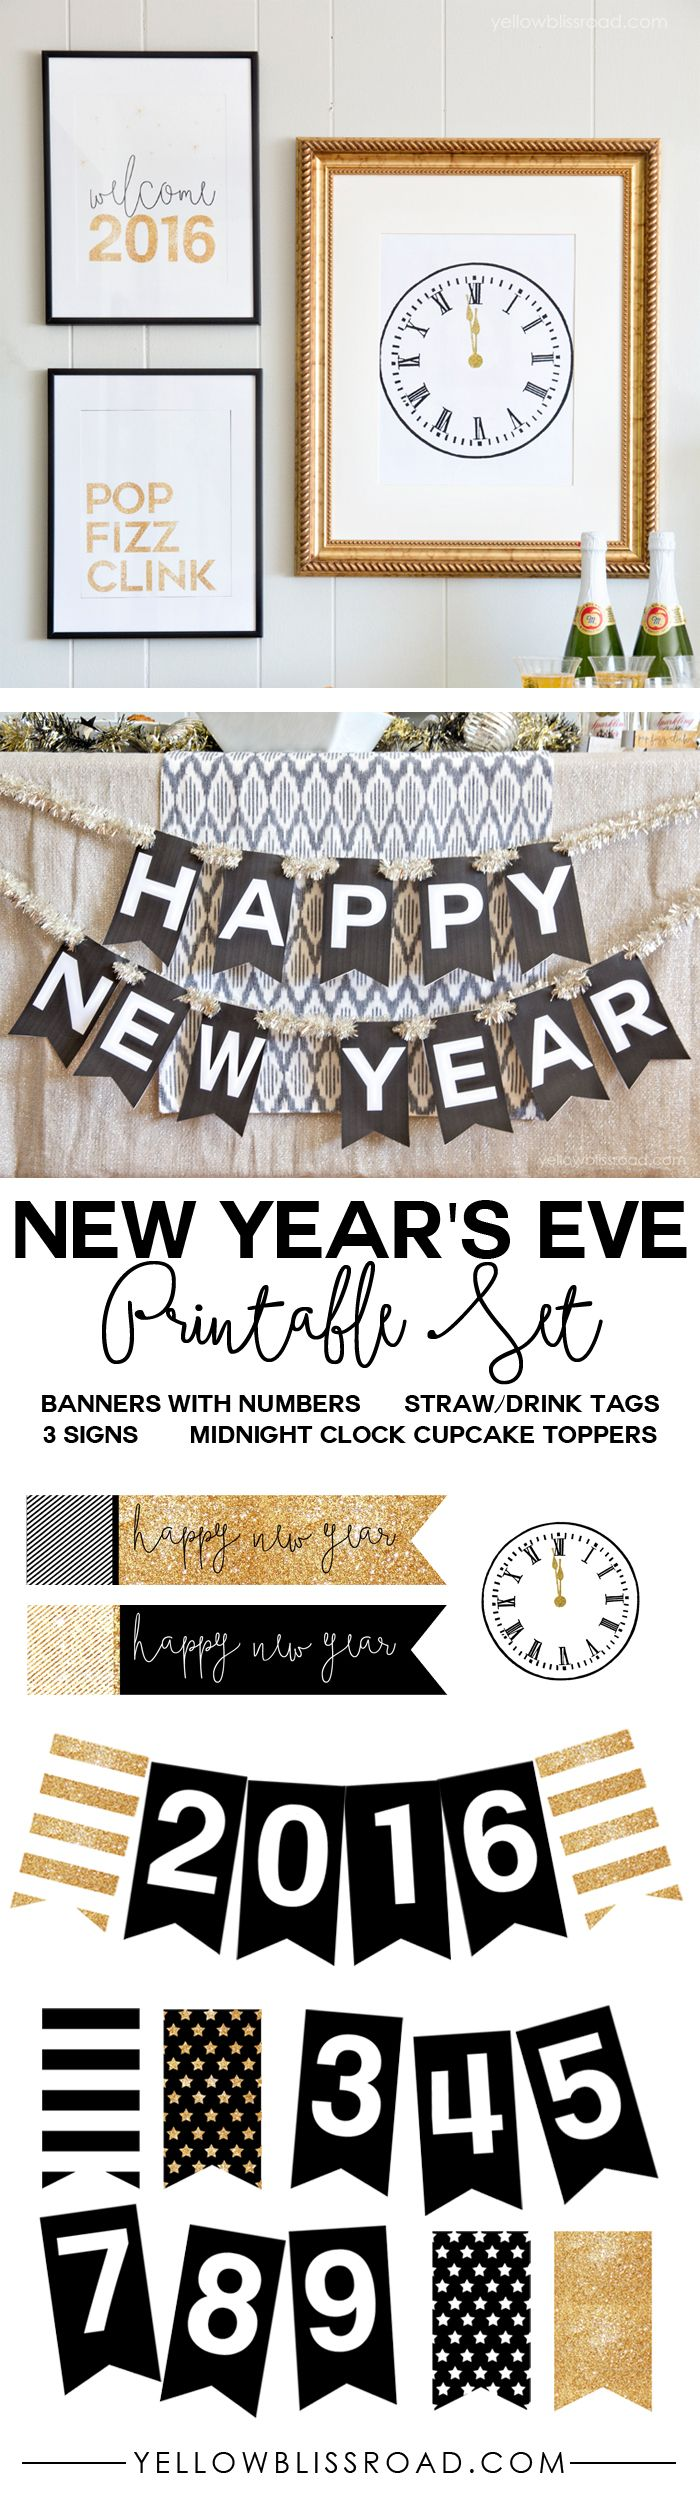 new years eve printable set with banners tags cupcake toppers and signs in black white and gold glitter